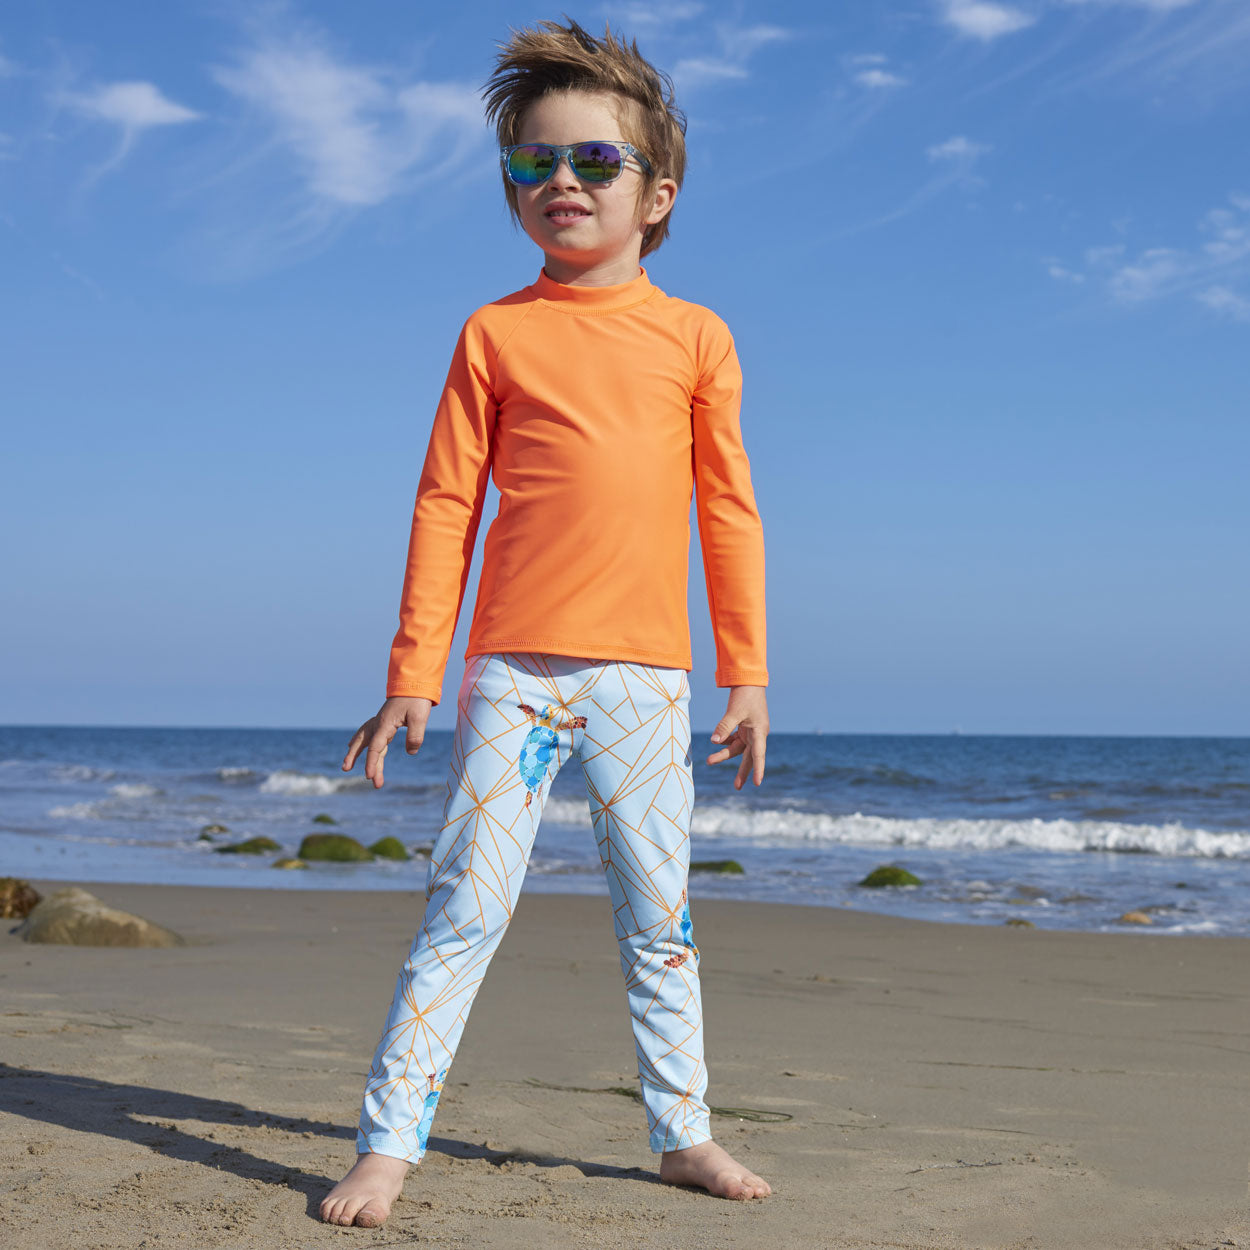 Turtle Hybrid Youth Leggings UPF 50+ for Boys